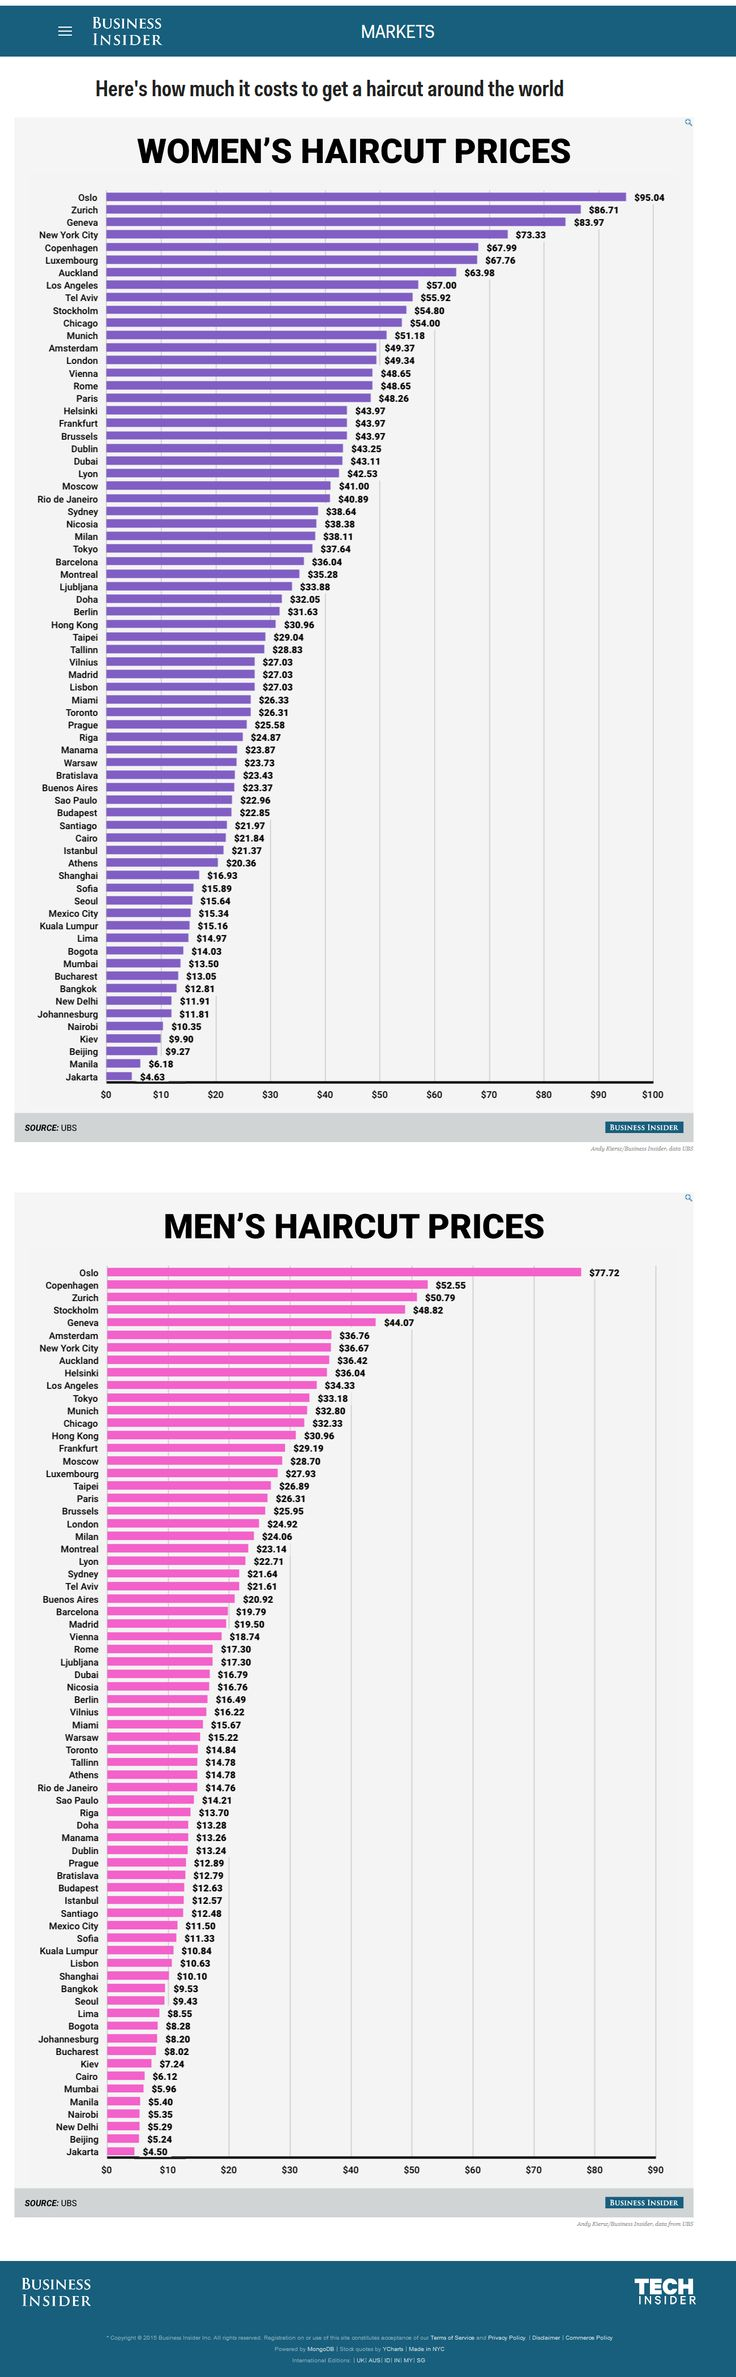 """Here's how much it costs to get a haircut around the world"" by Business Insider http://www.businessinsider.com/how-expensive-haircuts-are-around-the-world-2015-9 